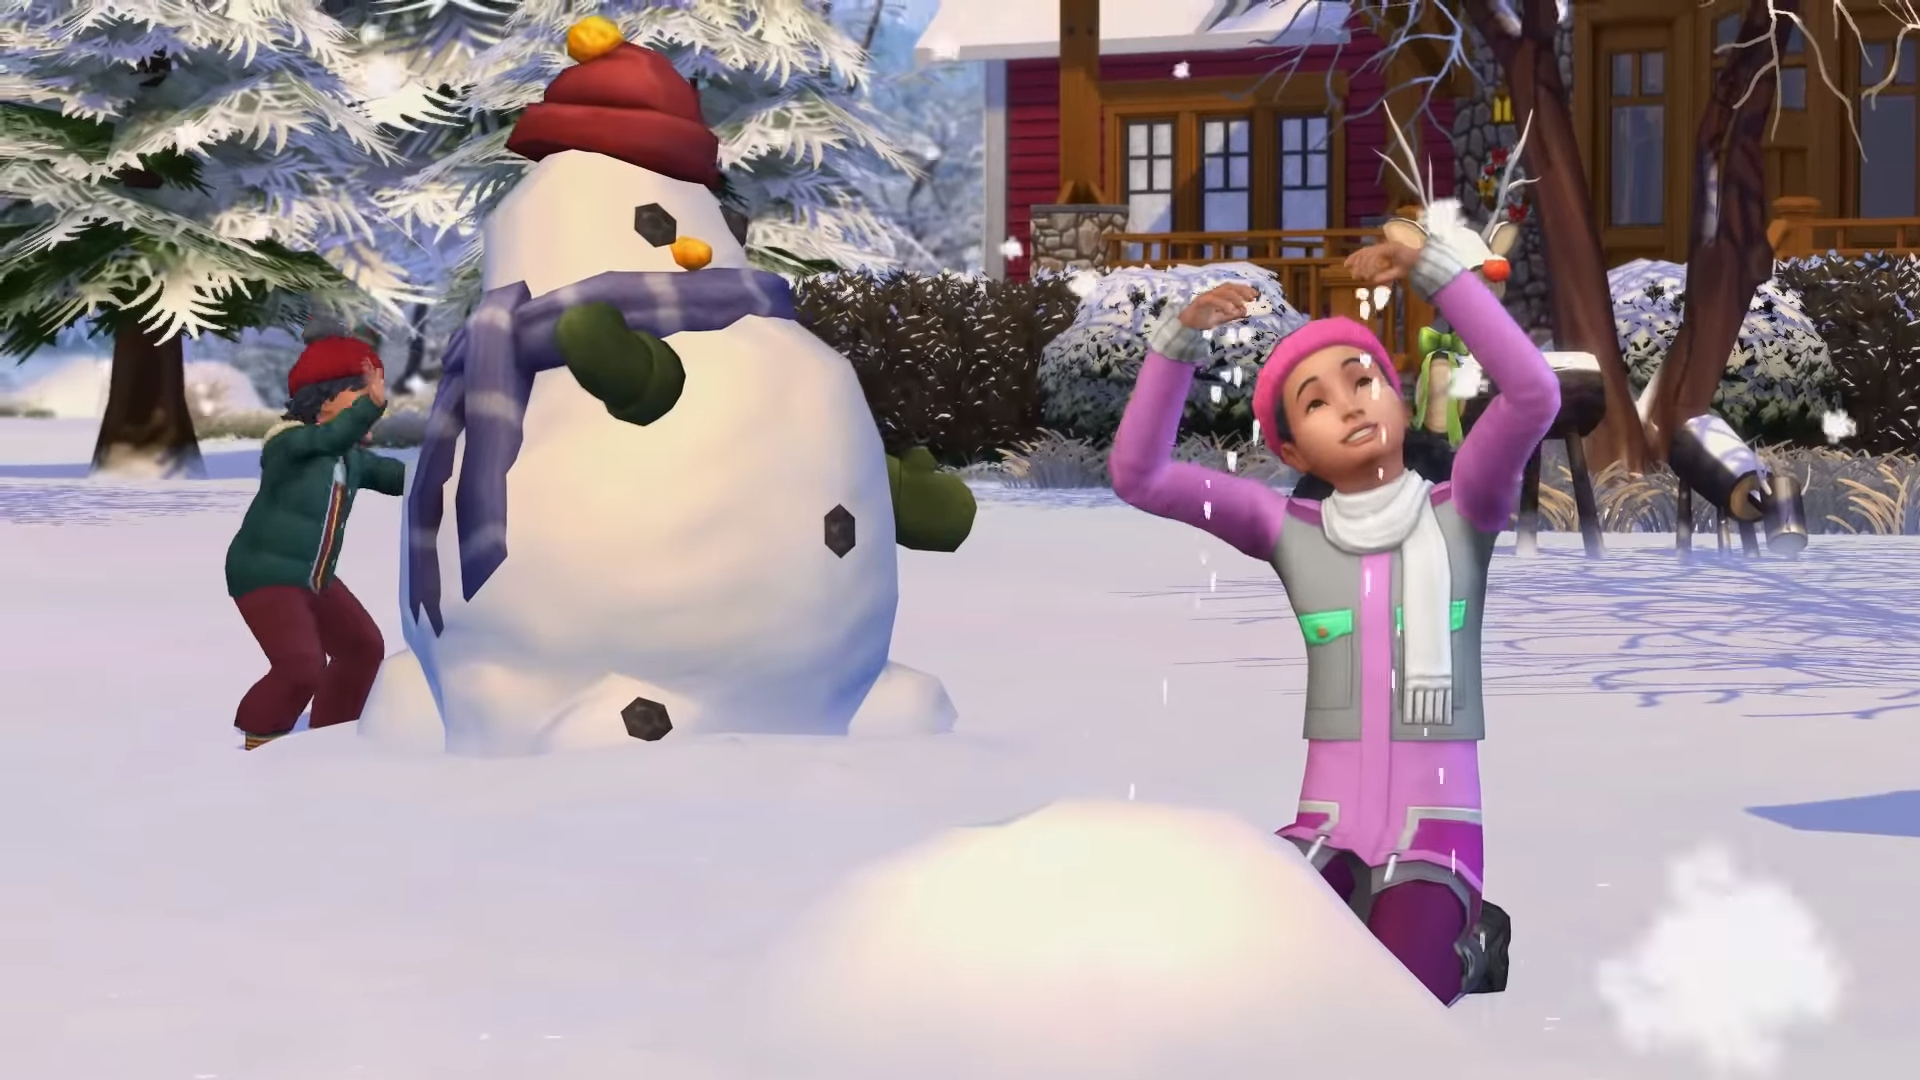 Sims playing in the snow with a weird snowman in the background